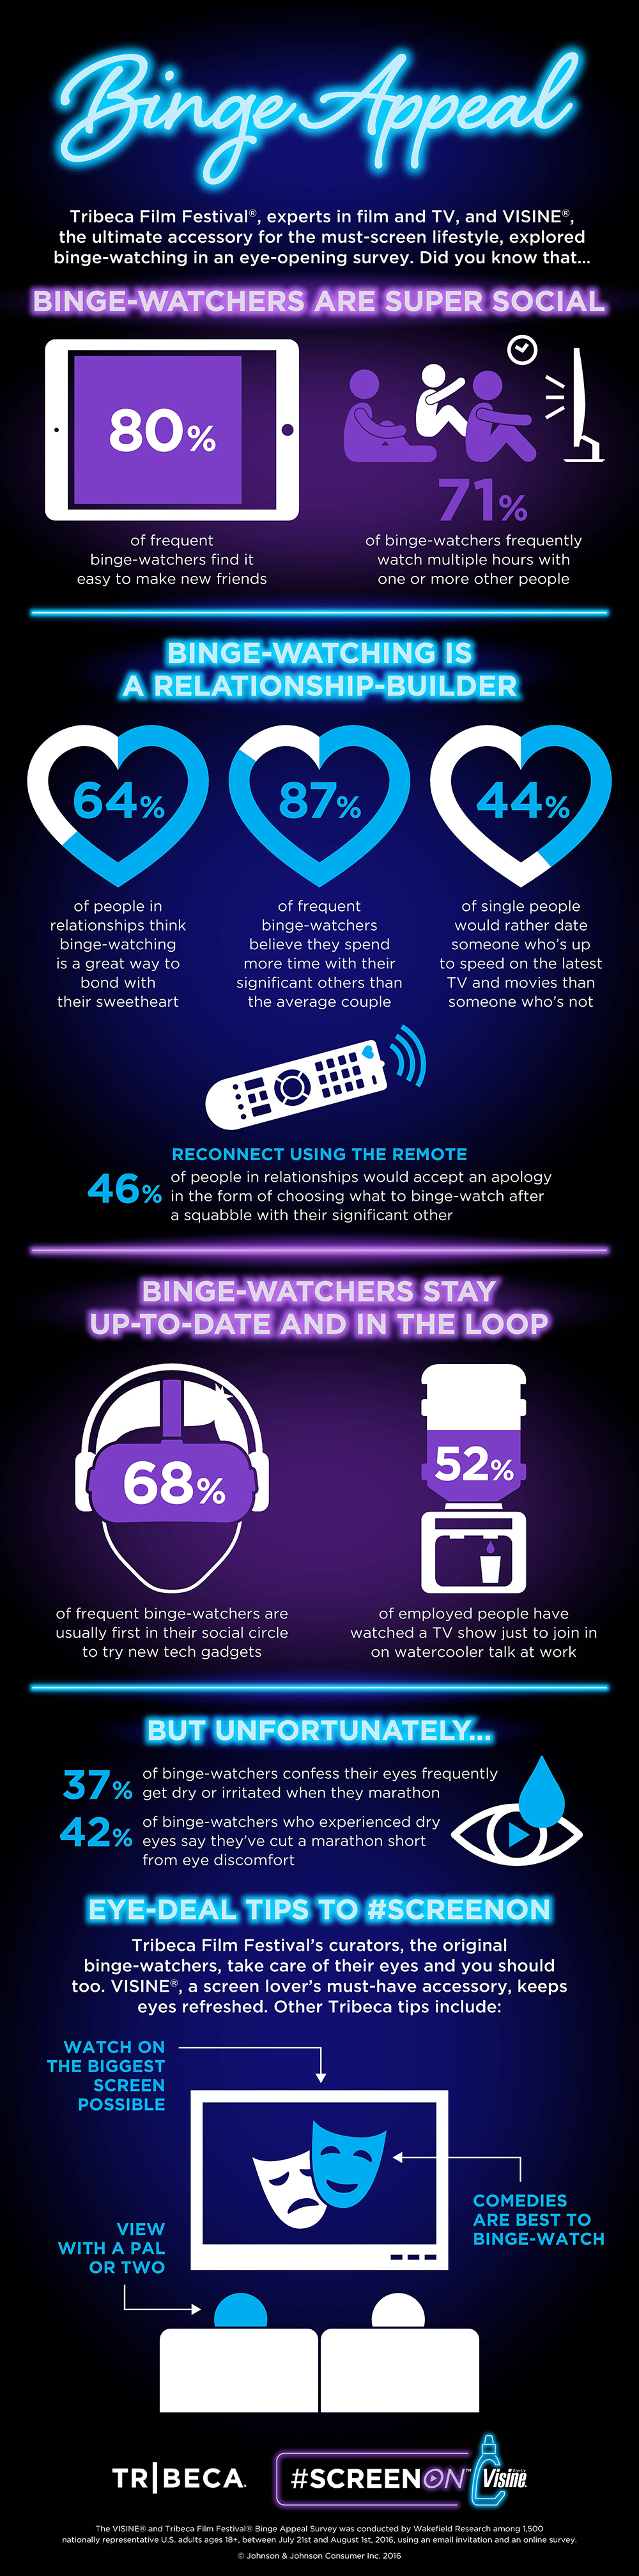 infographic-binge-watcher-visine